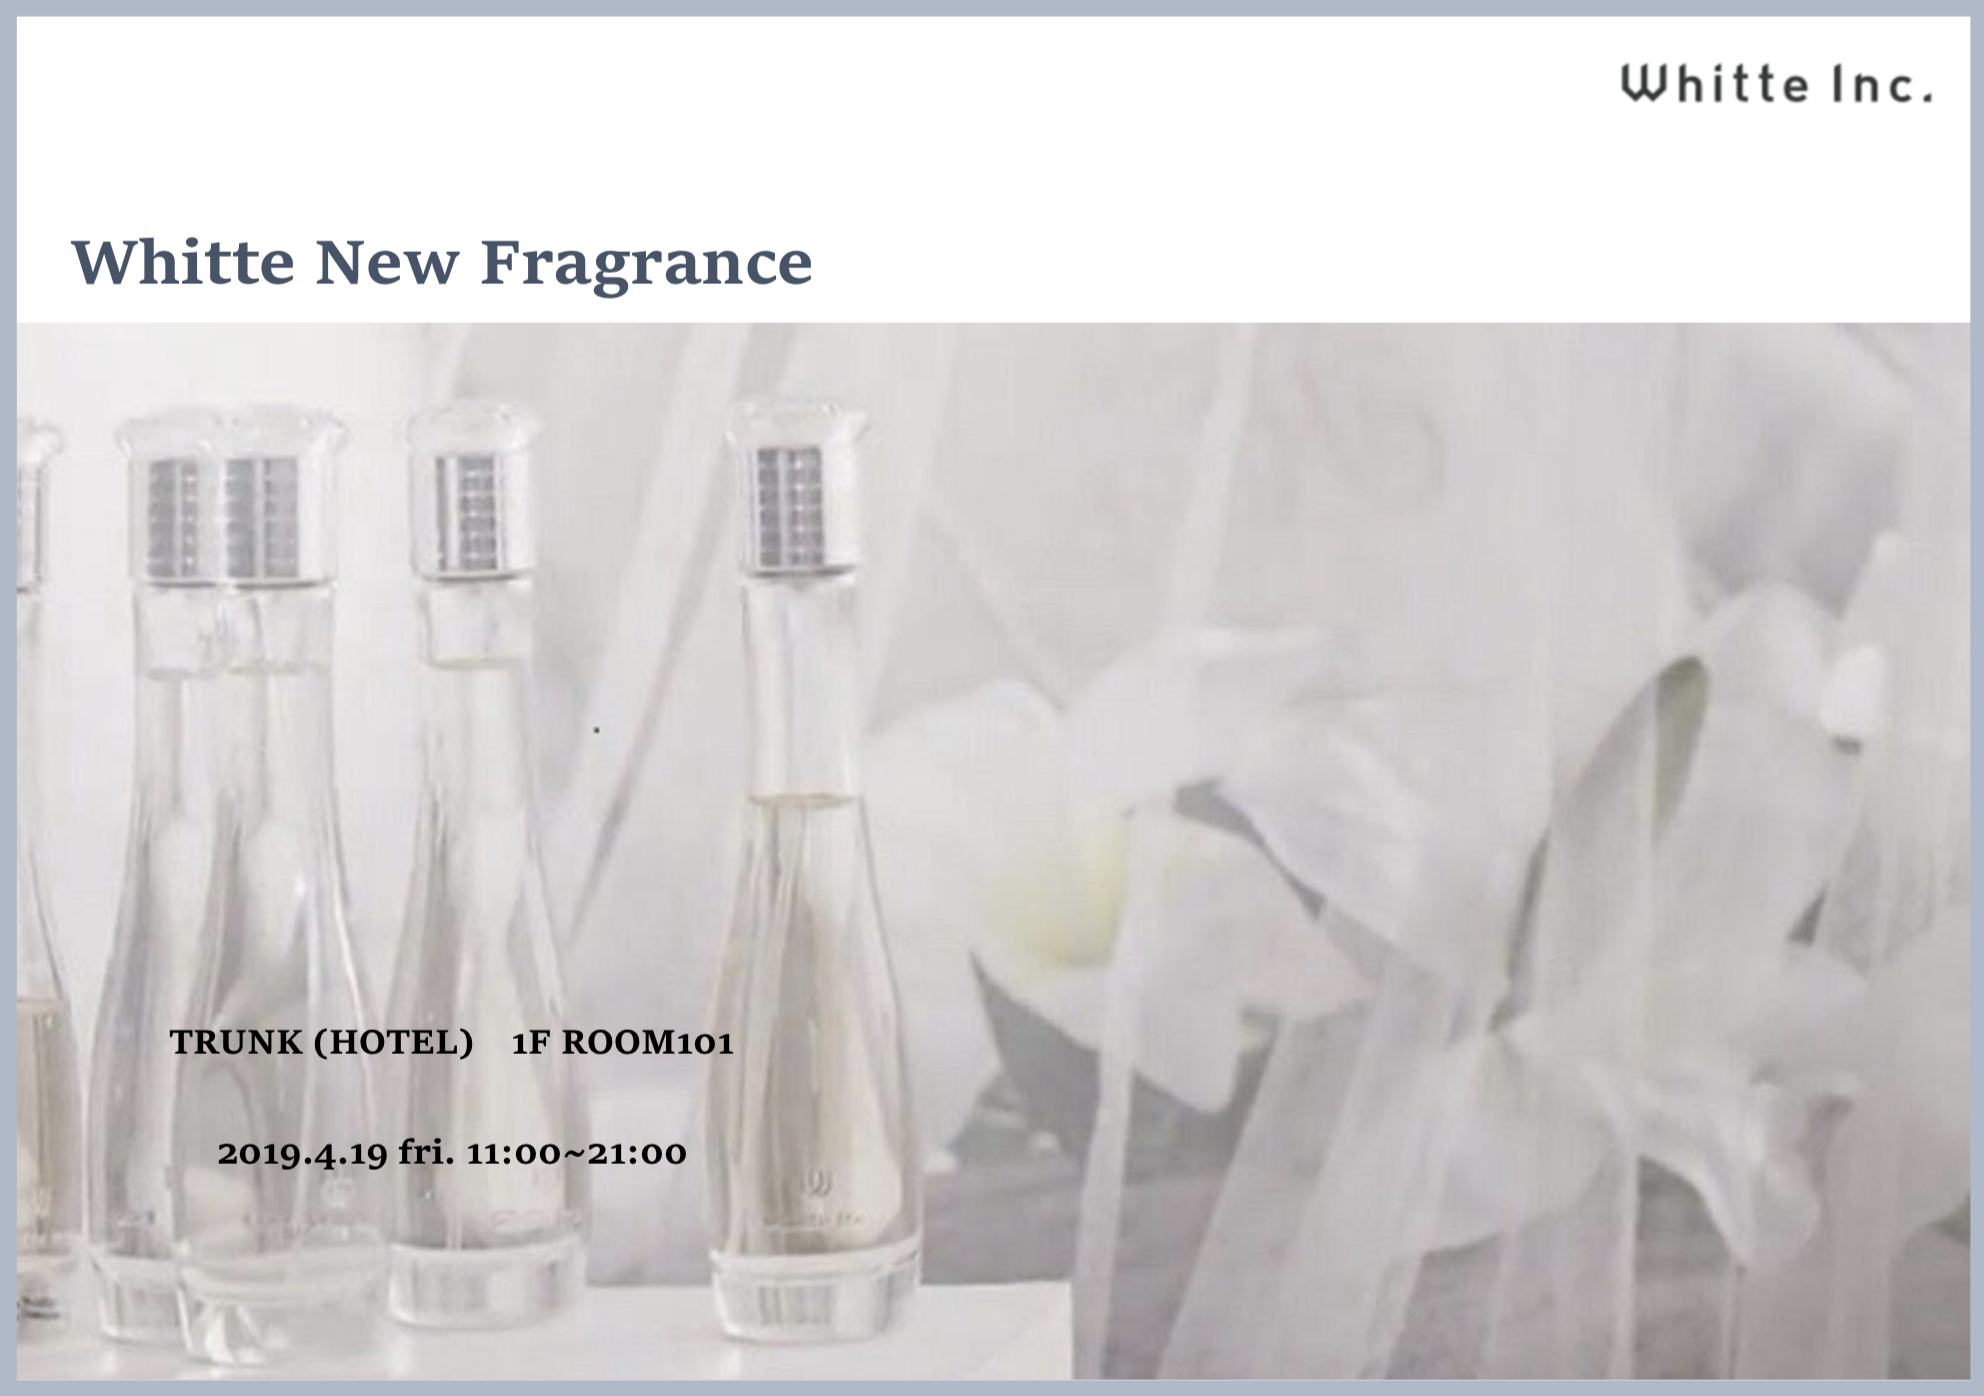 Whitte New Fragrance POP UP STORE